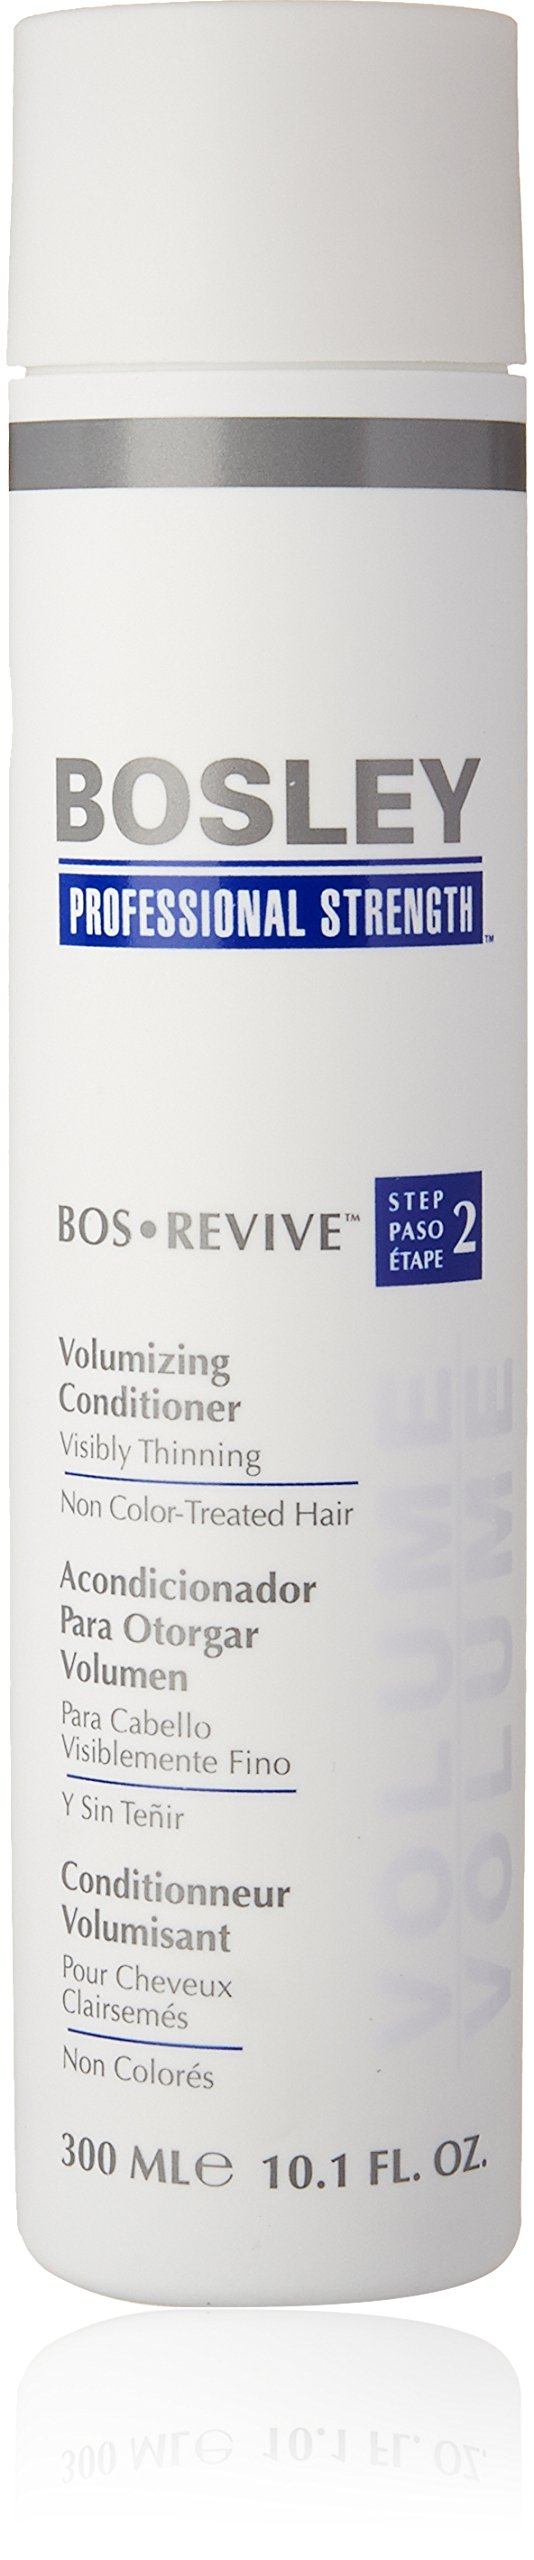 Bosley Professional Strength Bosrevive Conditioner For Non Color-Treated Hair, 10.1 oz.